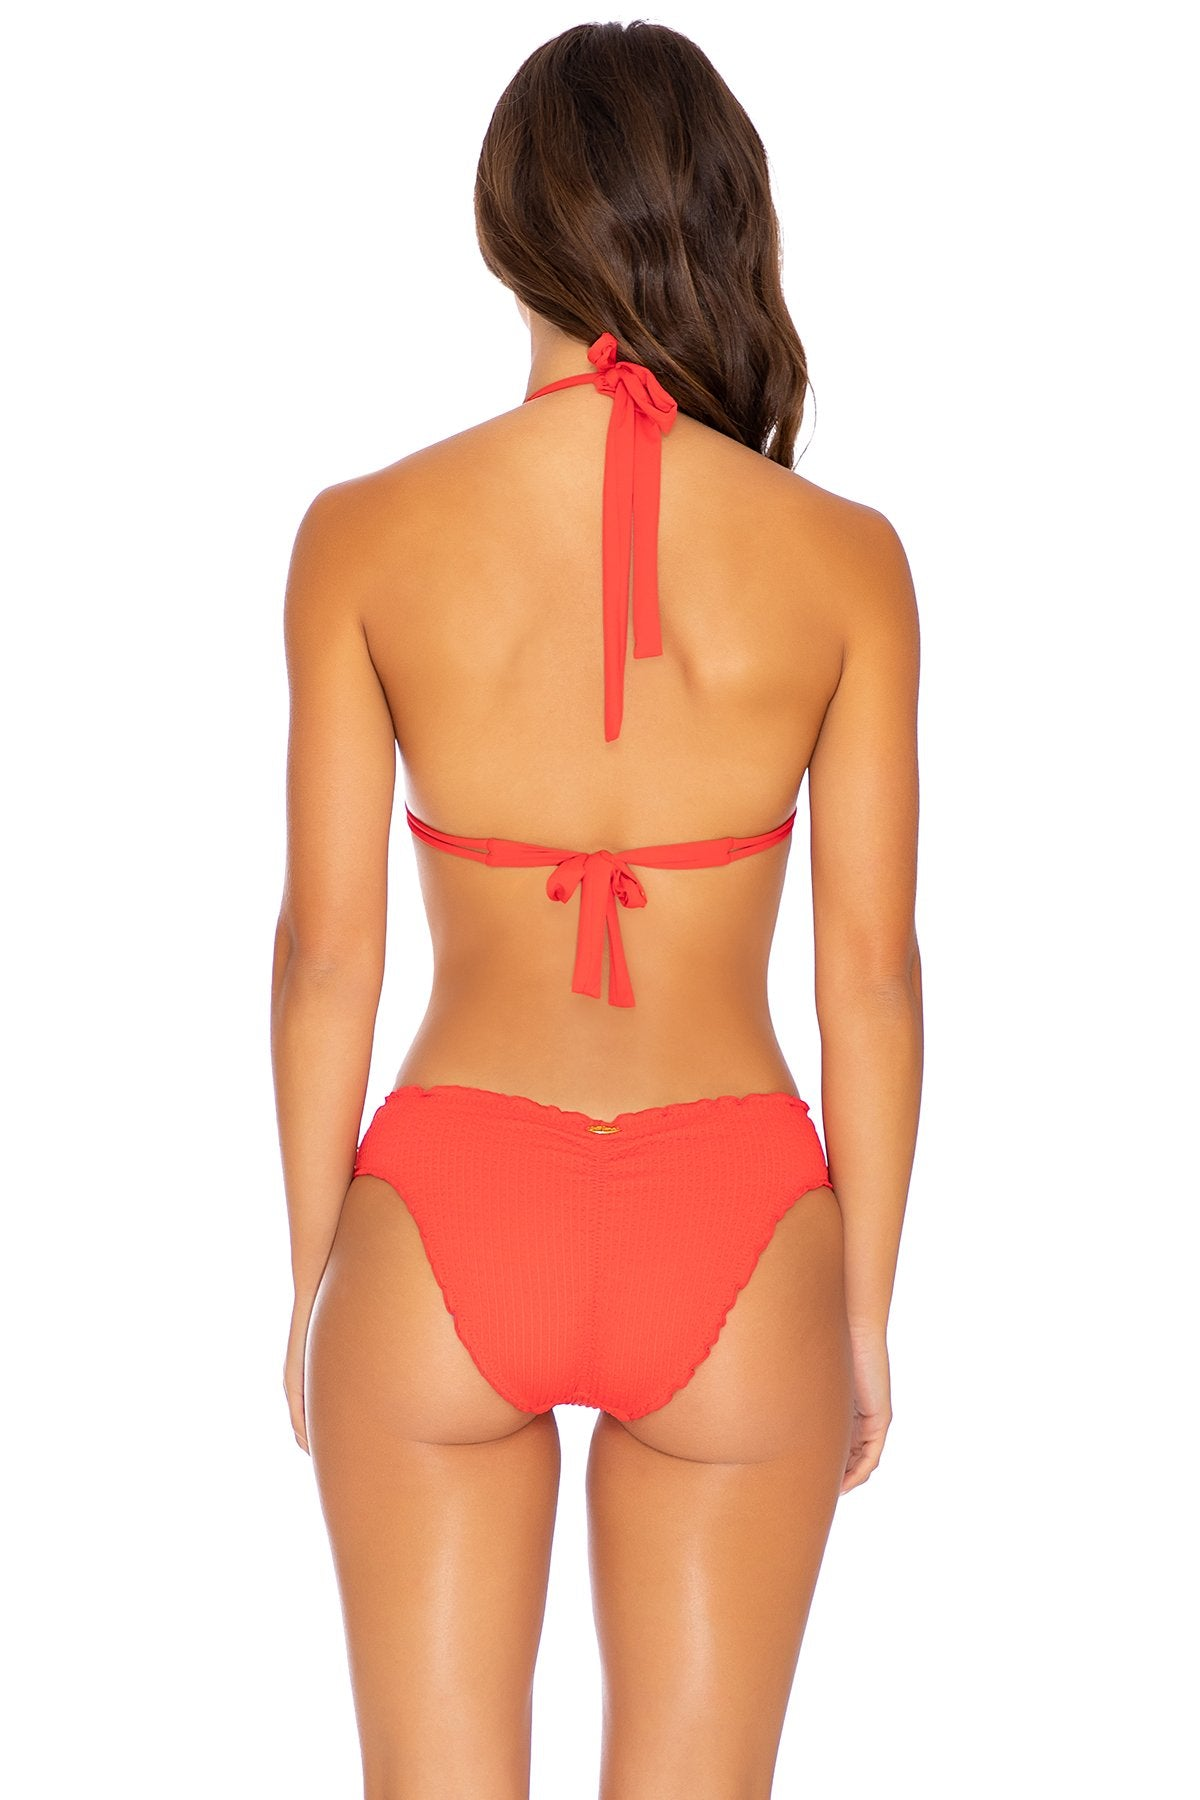 PURA CURIOSIDAD - Triangle Halter Top & Seamless Full Ruched Back Bottom • Chili Pepper